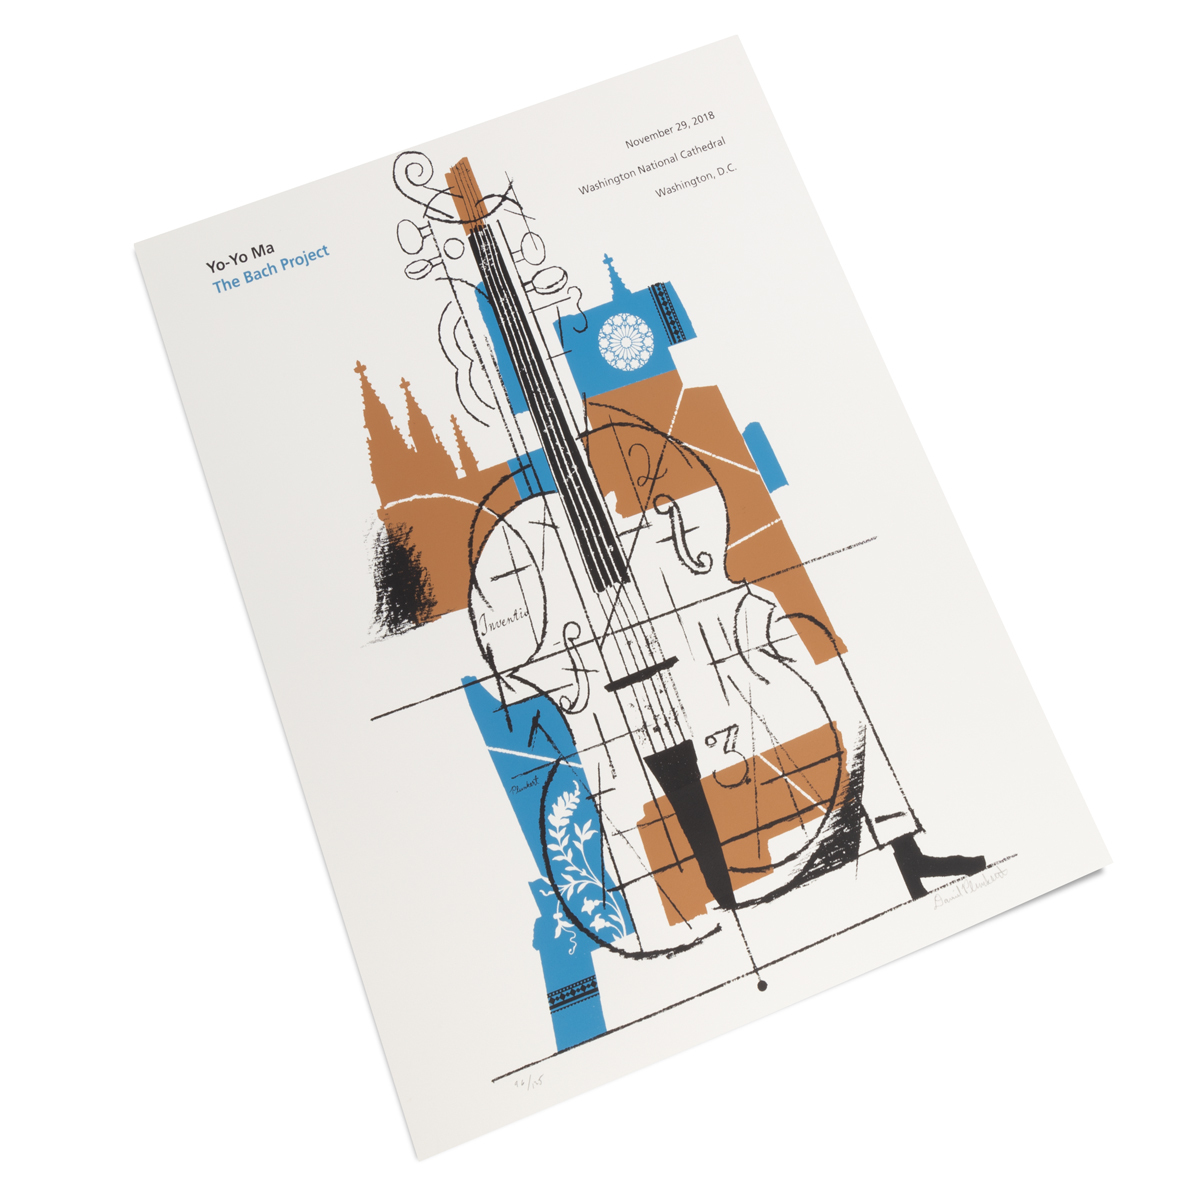 The National Cathedral 2018 Poster by David Plunkert (signed)